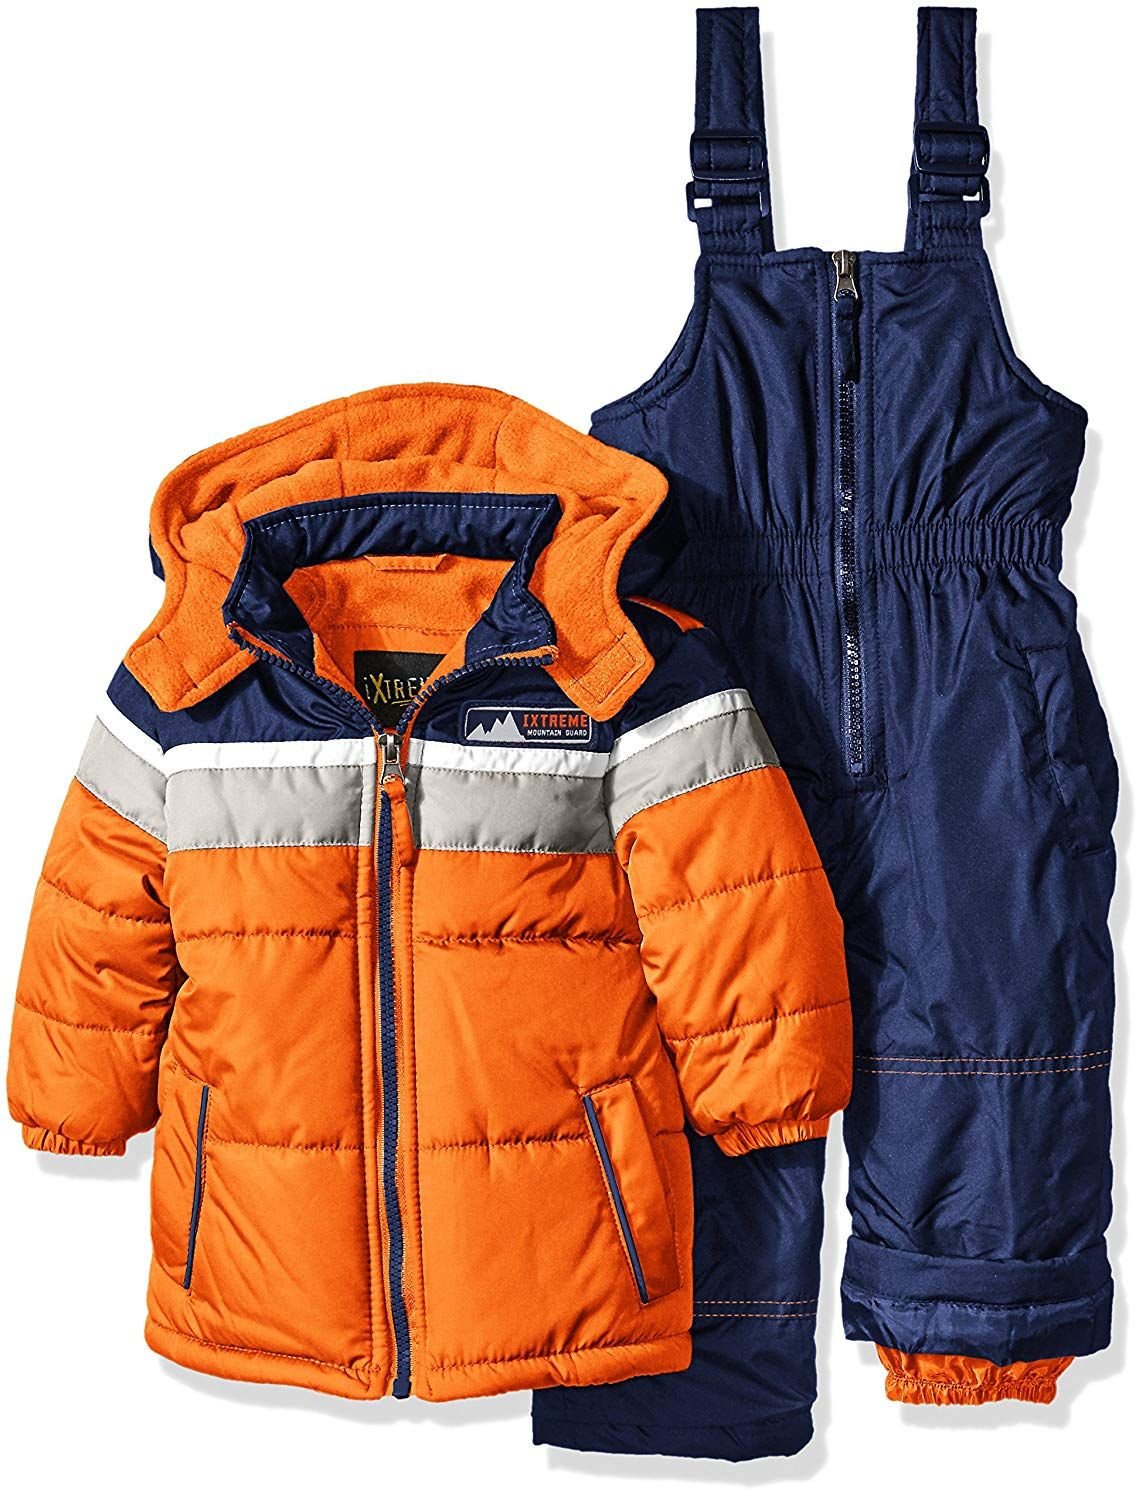 544357b79 iXtreme Boys Insulated Two-Piece Snowsuits in 2019 | Natali's | Snow ...